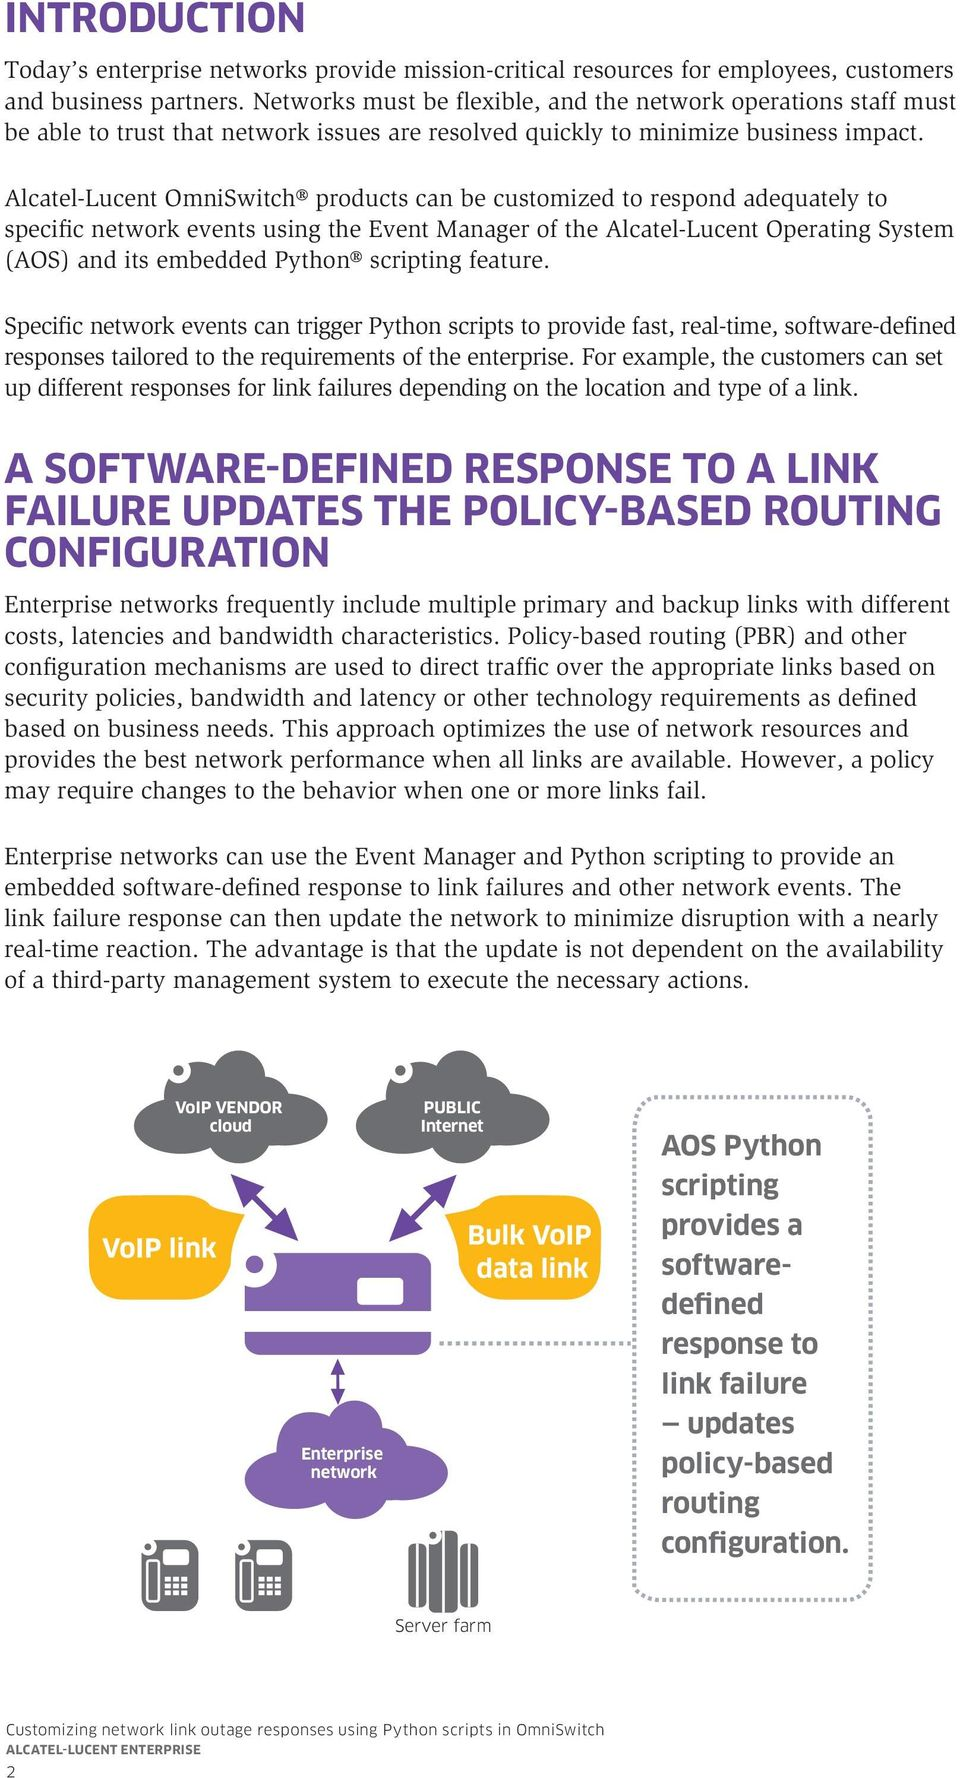 Alcatel-Lucent OmniSwitch products can be customized to respond adequately to specific network events using the Event Manager of the Alcatel-Lucent Operating System (AOS) and its embedded Python